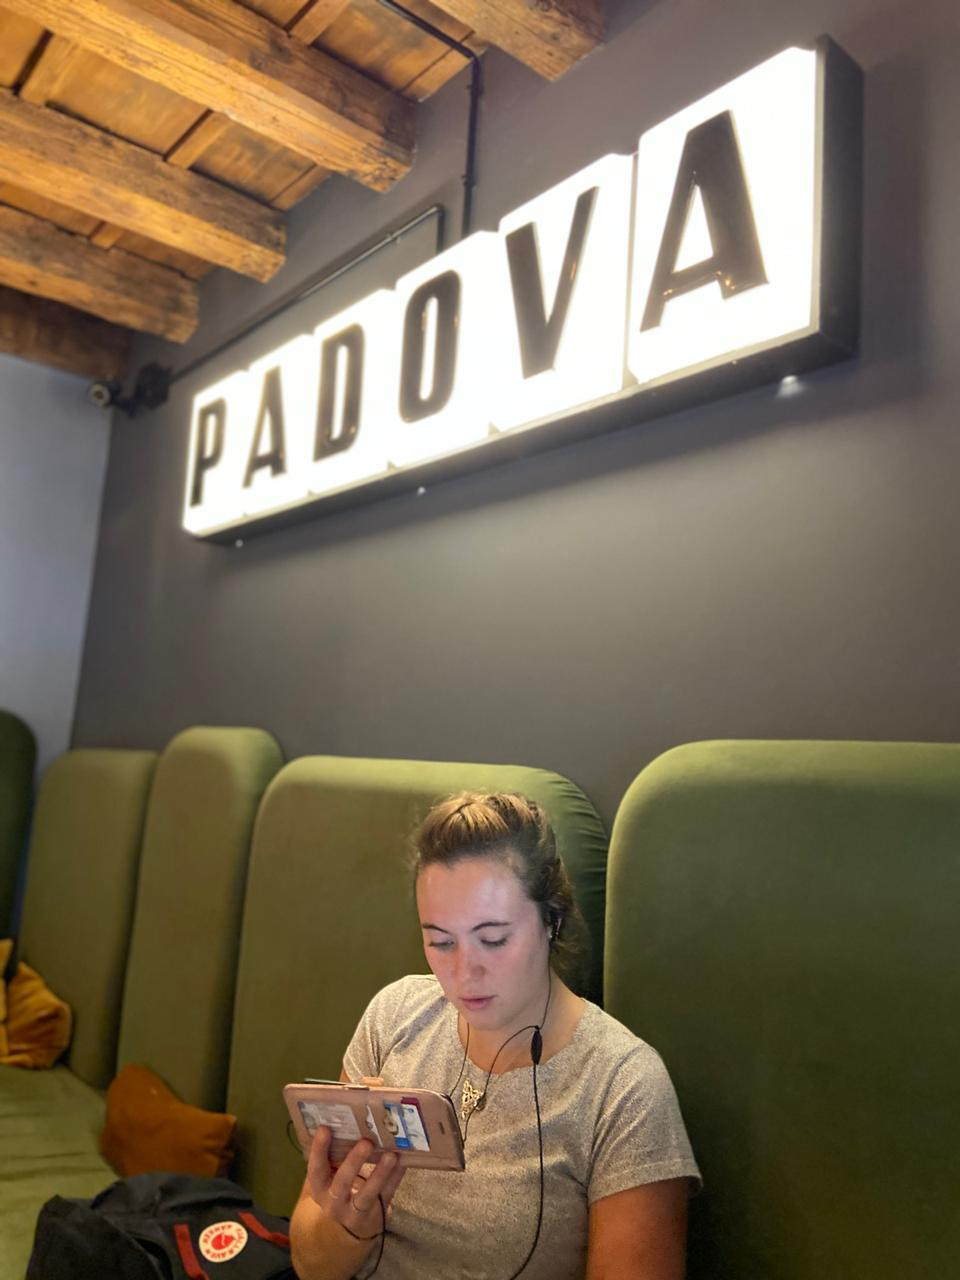 Lauren under Padova sign